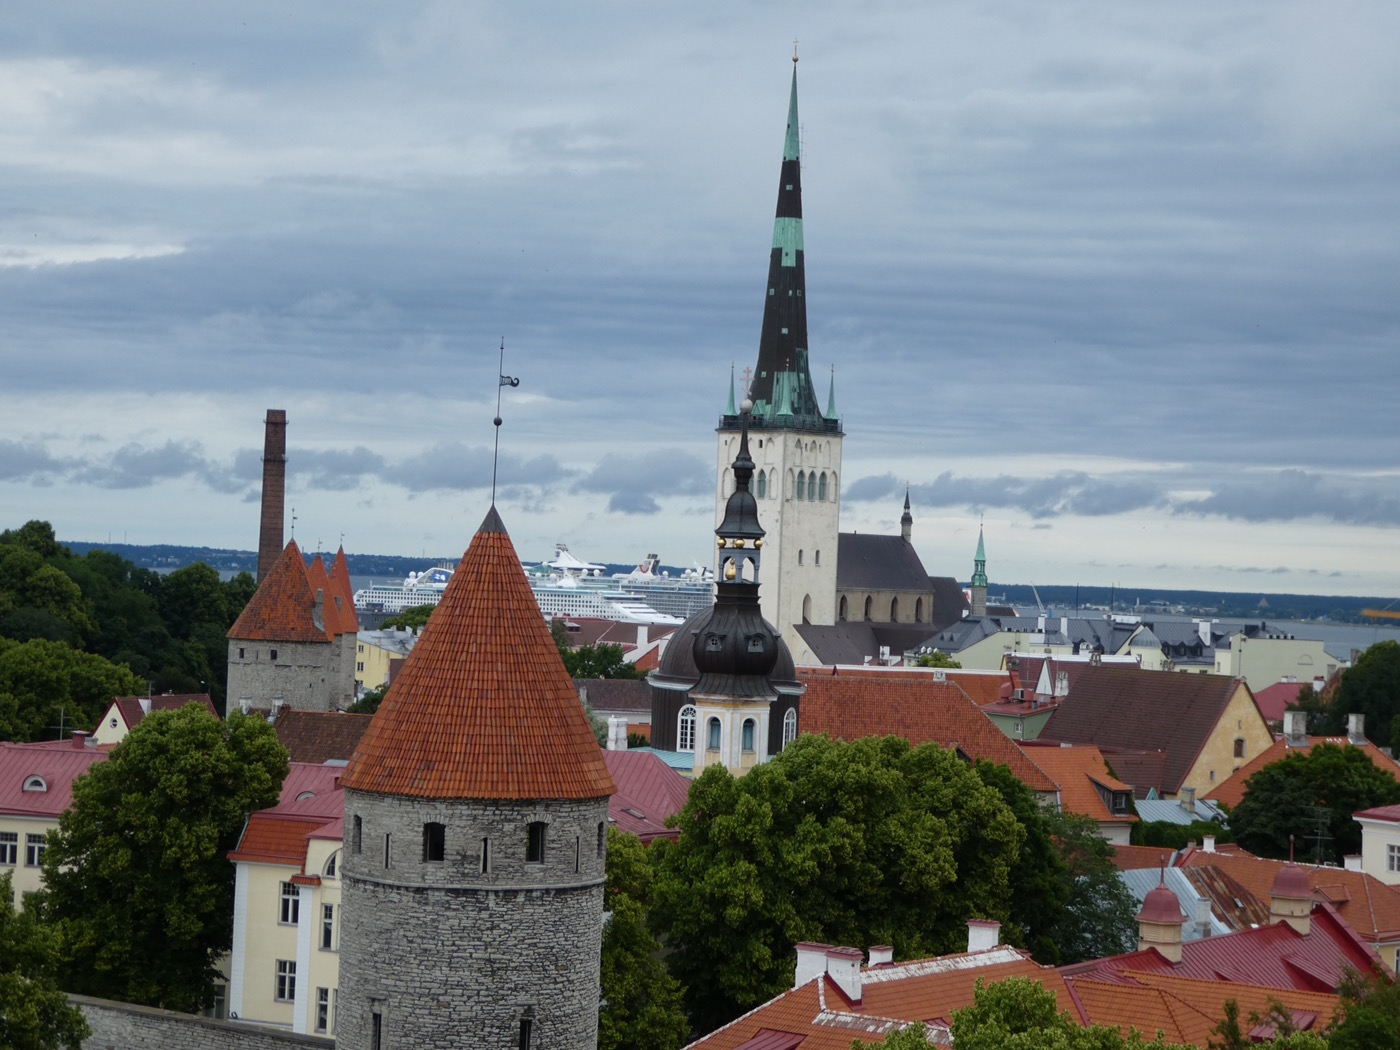 The rooftops of Tallinn